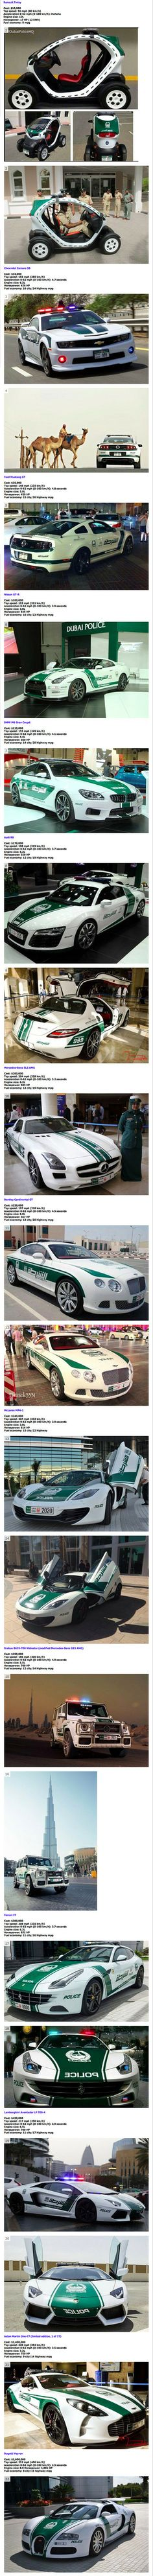 Yes, these are cars that the Dubai police force actually use.